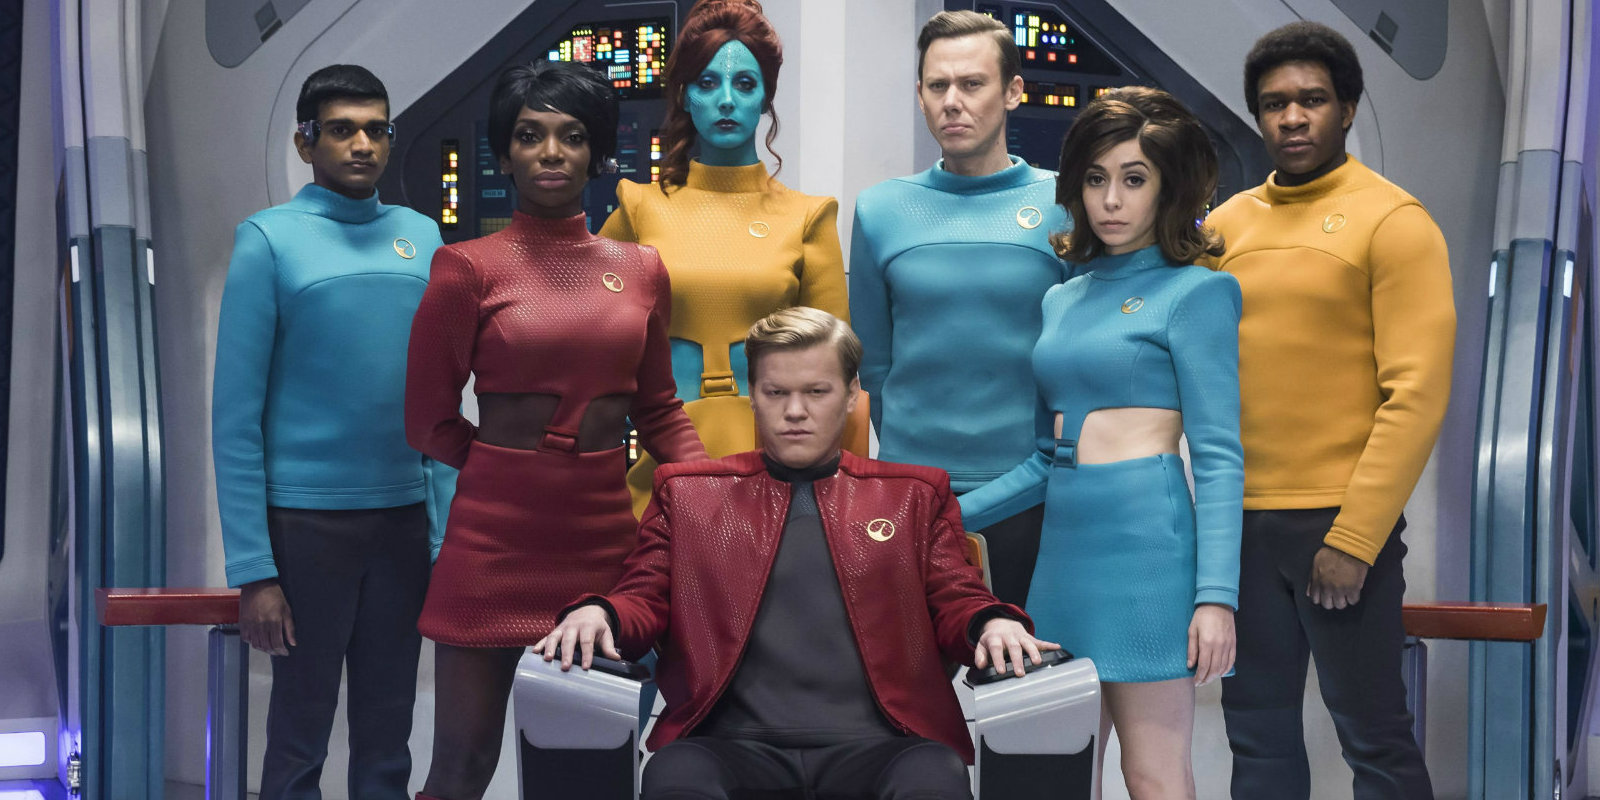 Black-Mirror-Season-4-USSS-Callister-images